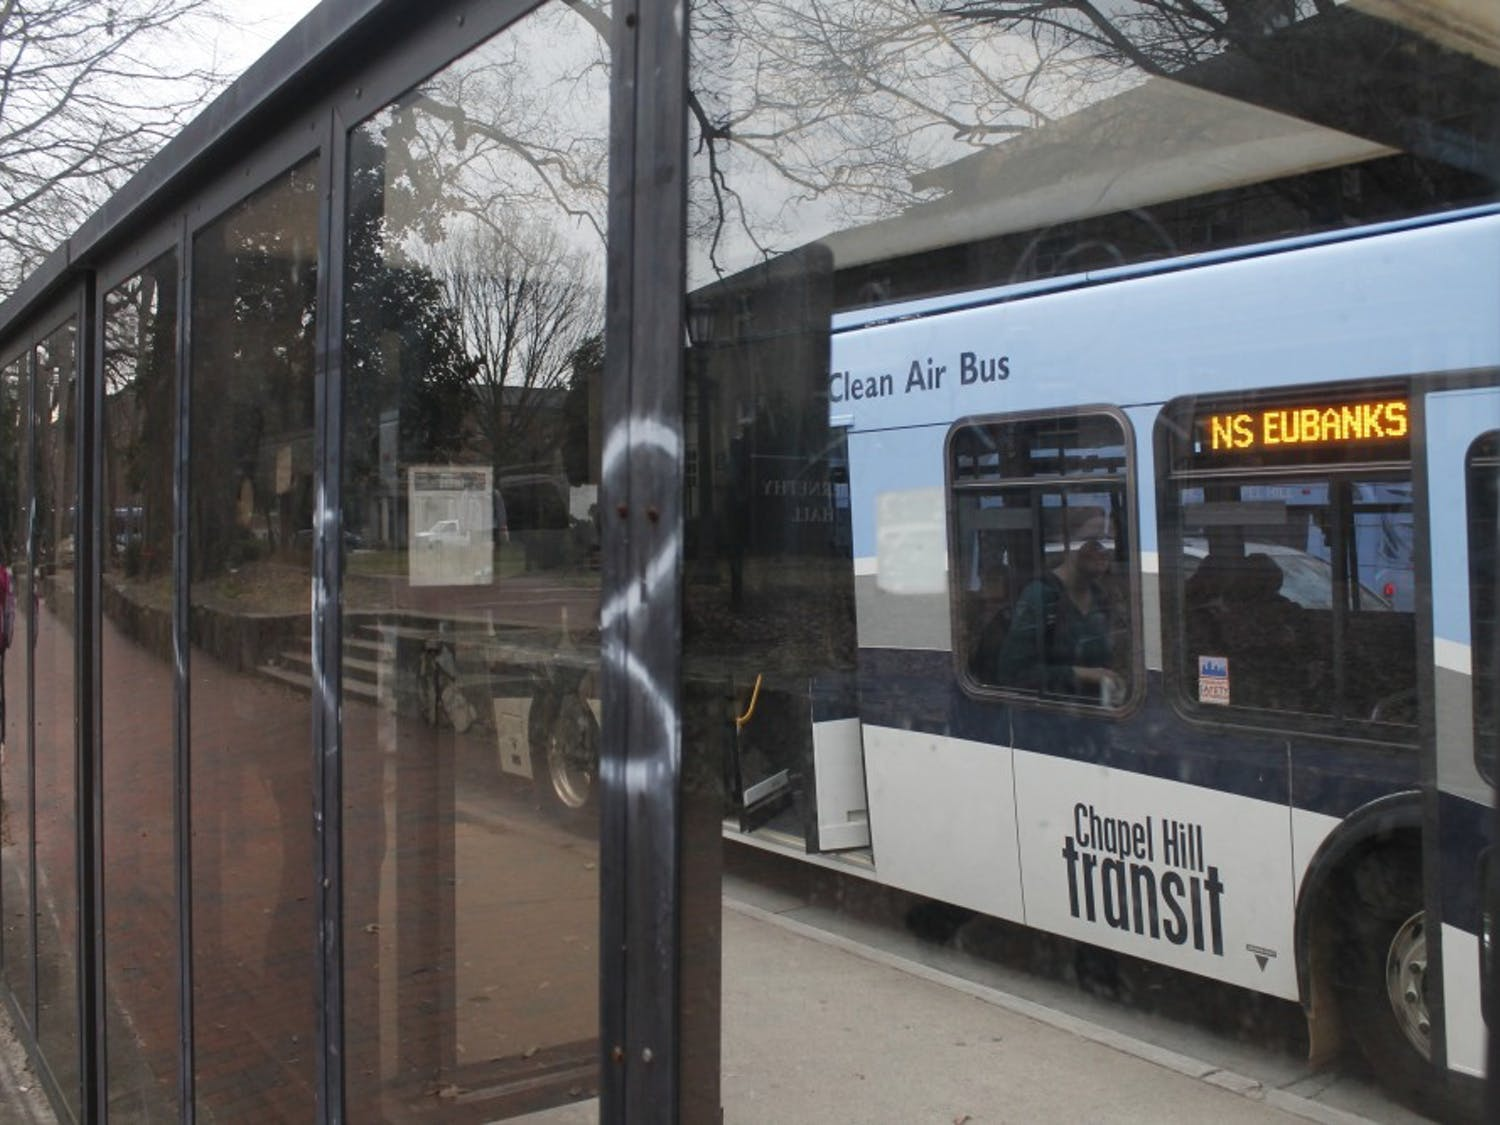 Rust, graffiti and debris plague the bus stop across from Fraternity Court on Tuesday, Jan. 29, 2019. Bus stops all around the town of Chapel Hill have been victims of neglect and signs have begun to show.